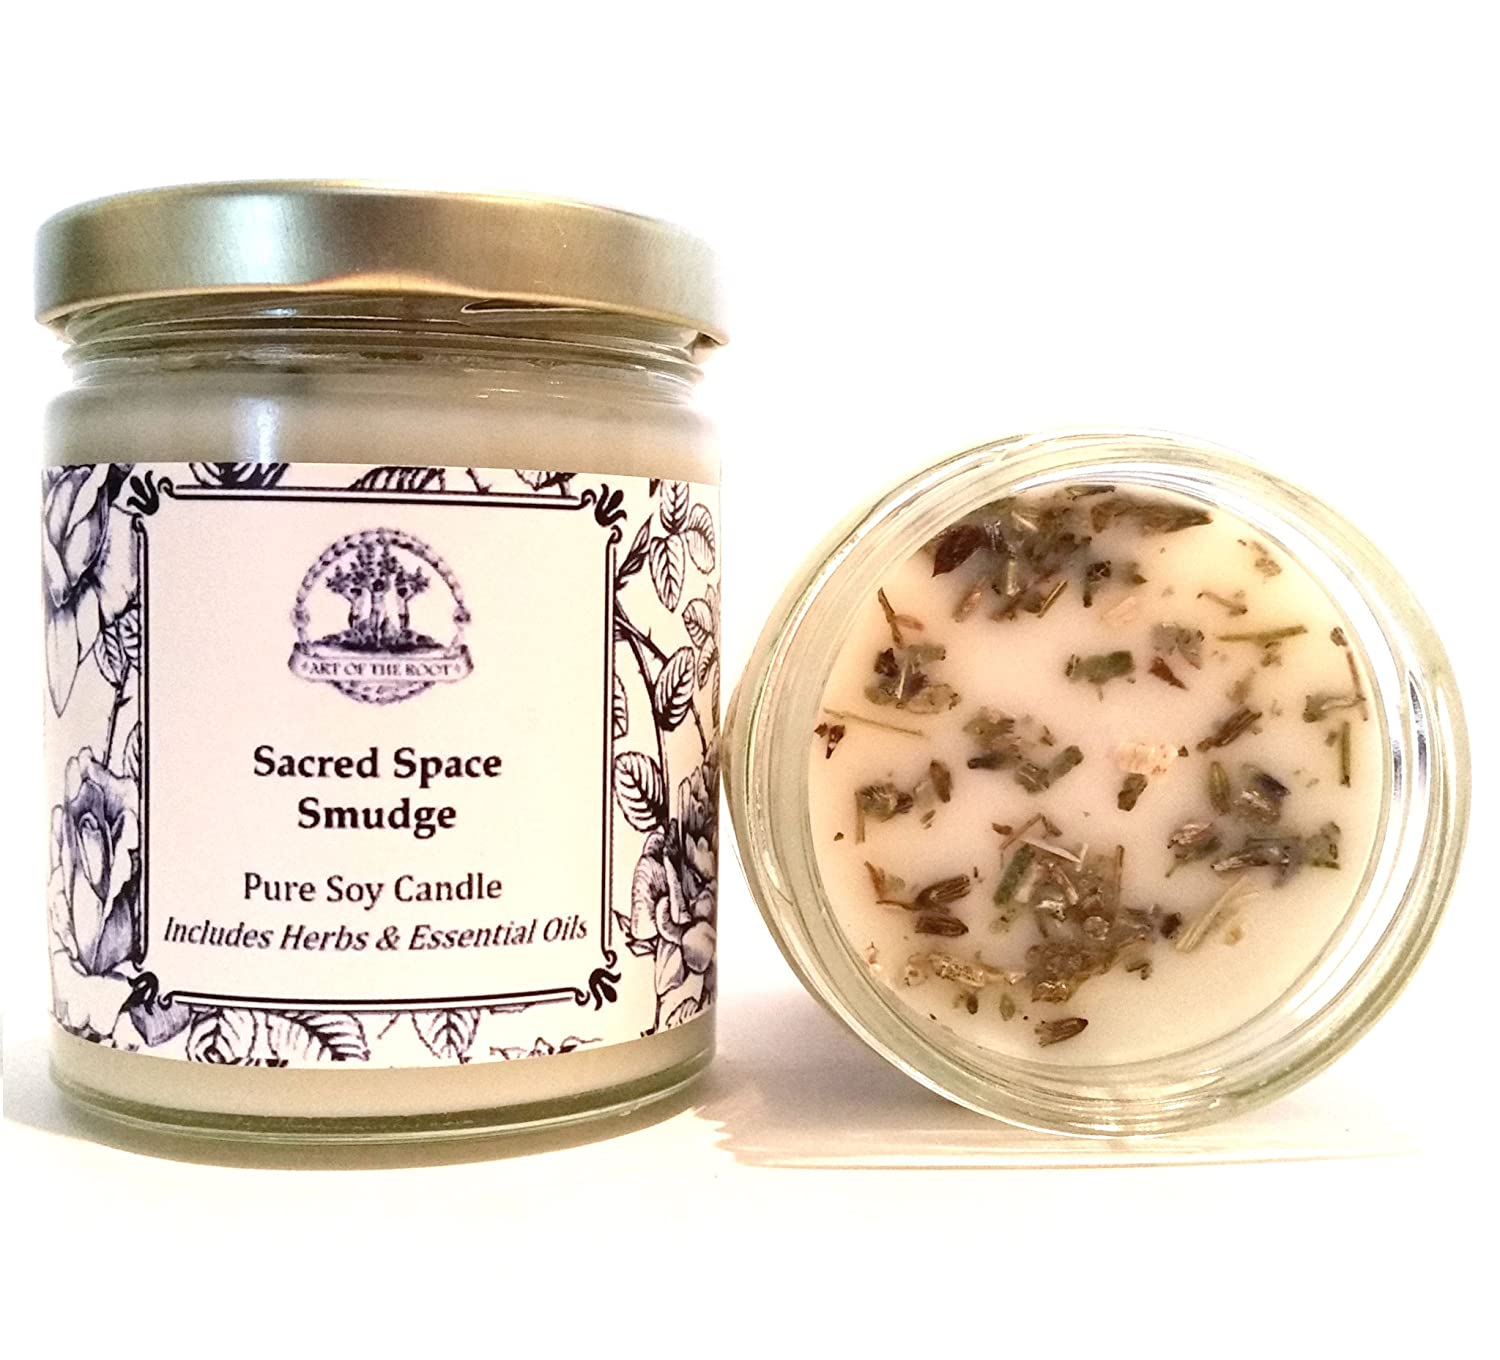 Art of the Root Sacred Space Soy Herbal Smudge Candle 8 oz Lavender, Sage & Cedar Purification, Negative Energy & Serenity Ltd.